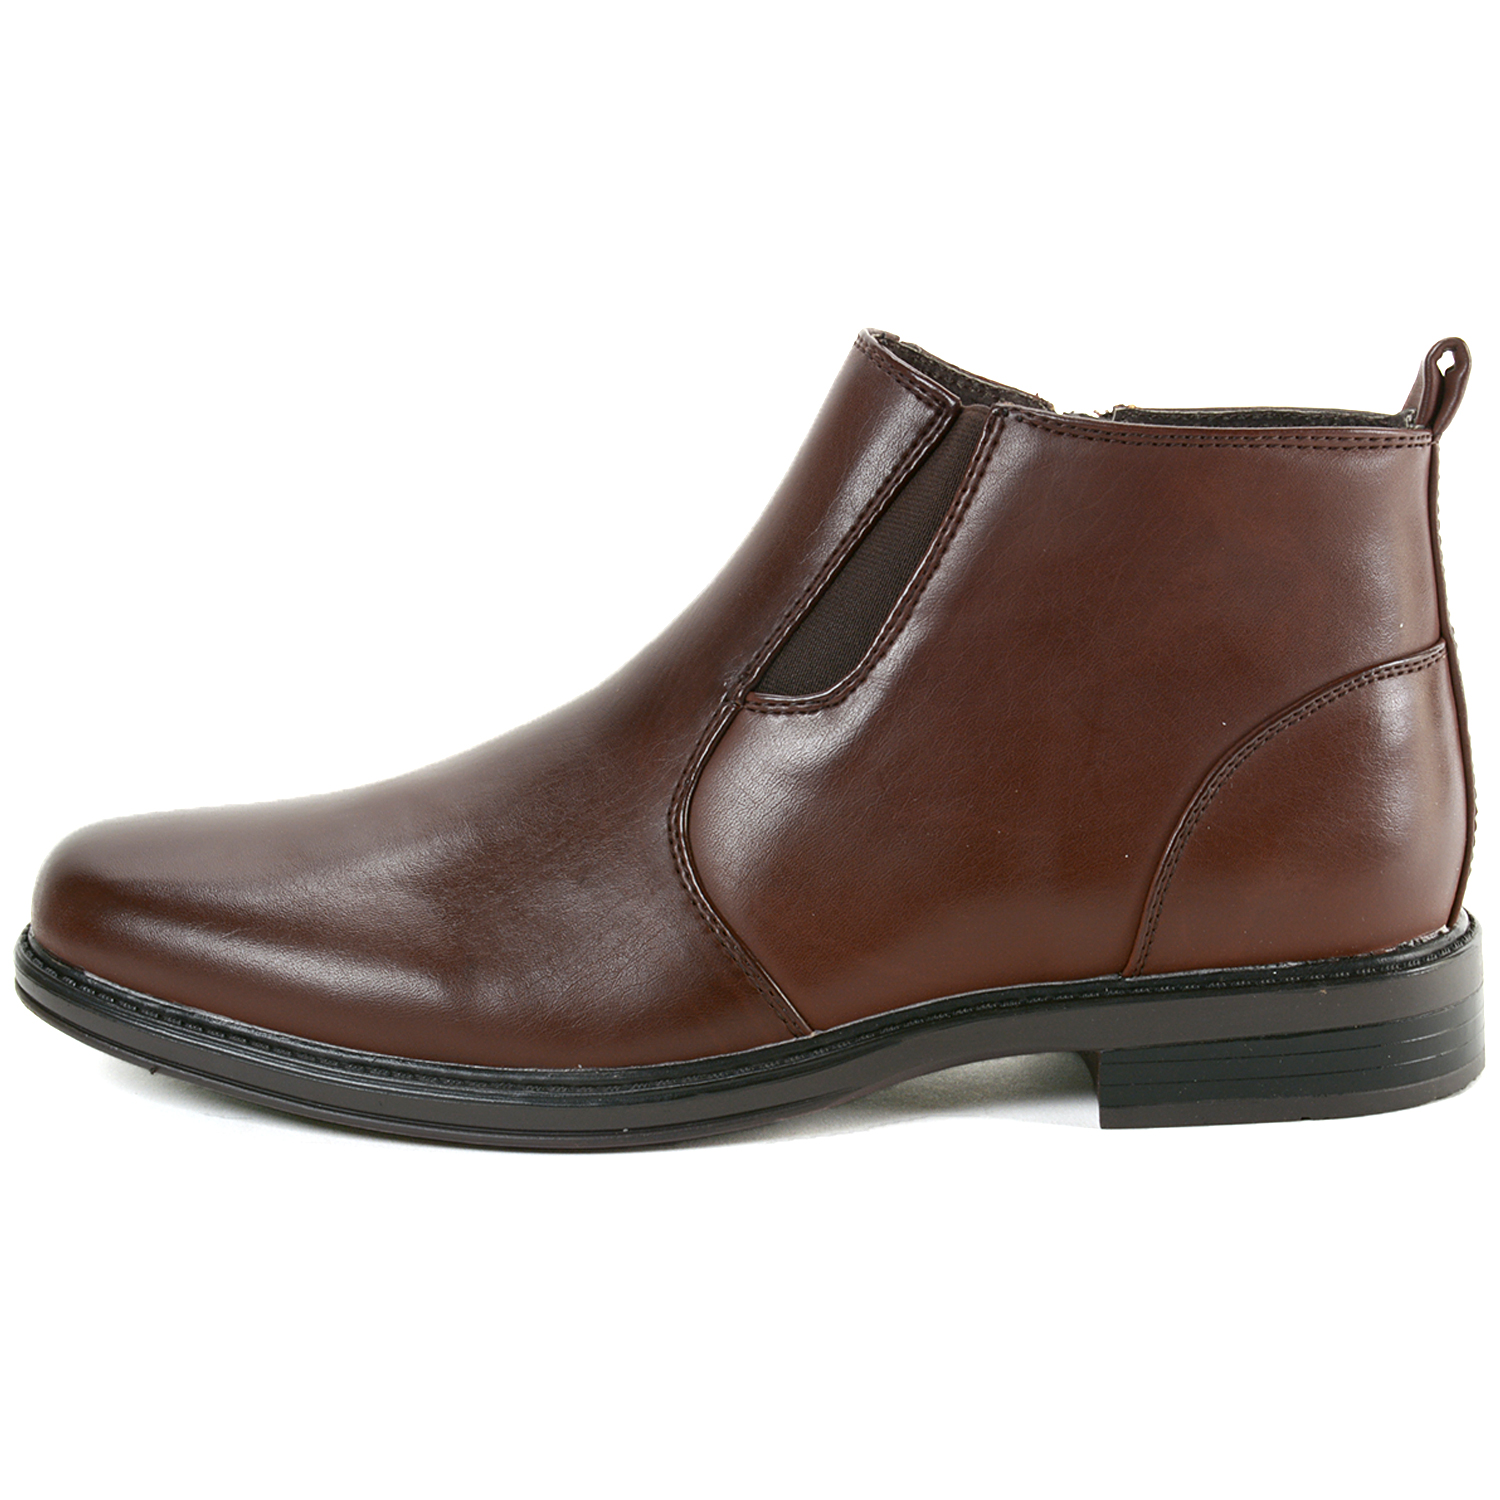 alpine swiss eli mens dressy ankle boots chelsea side zip